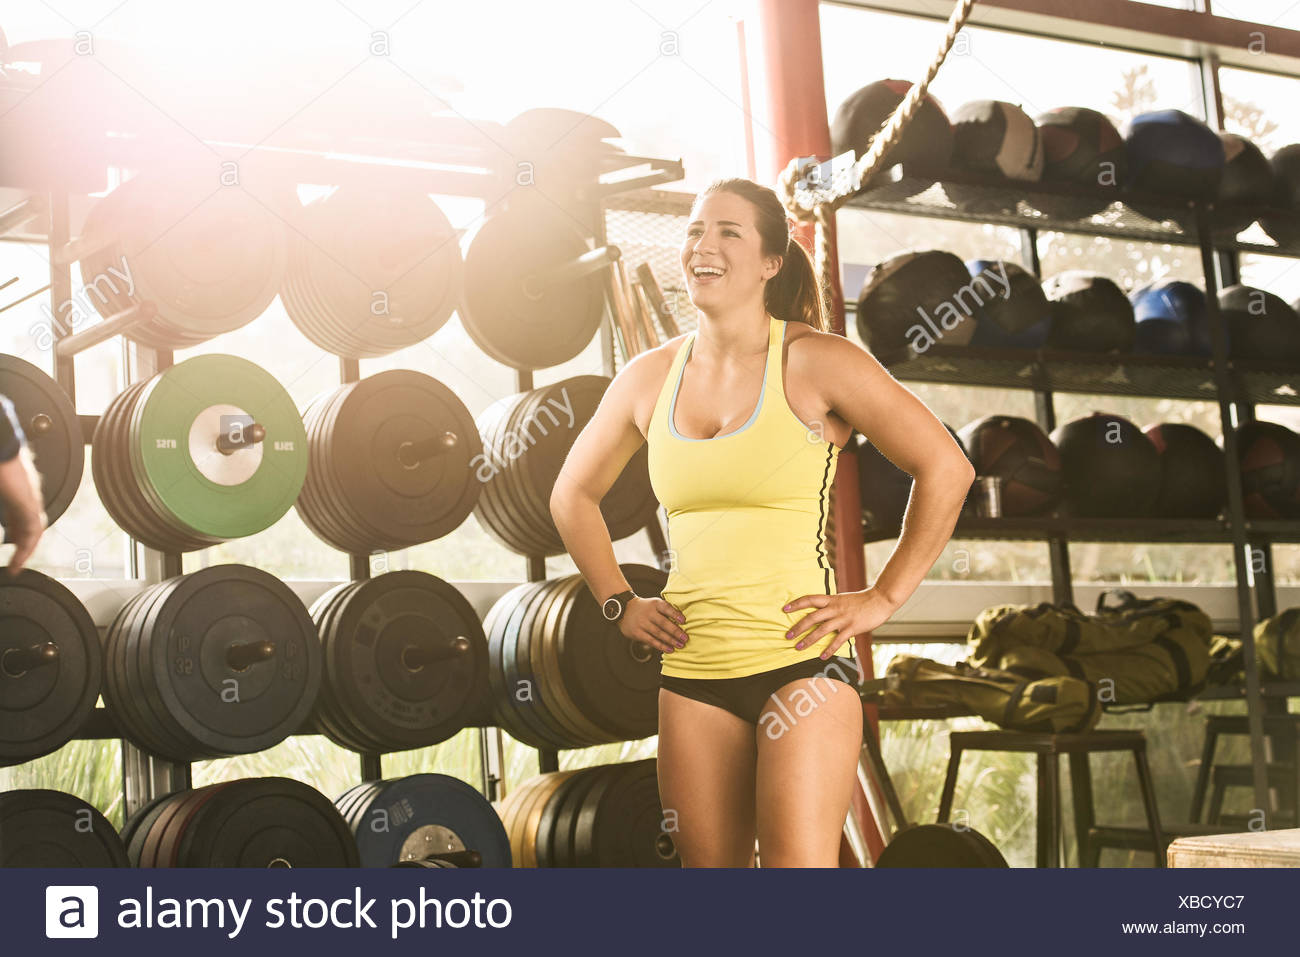 Happy bodybuilder standing in front of gym apparatus - Stock Image